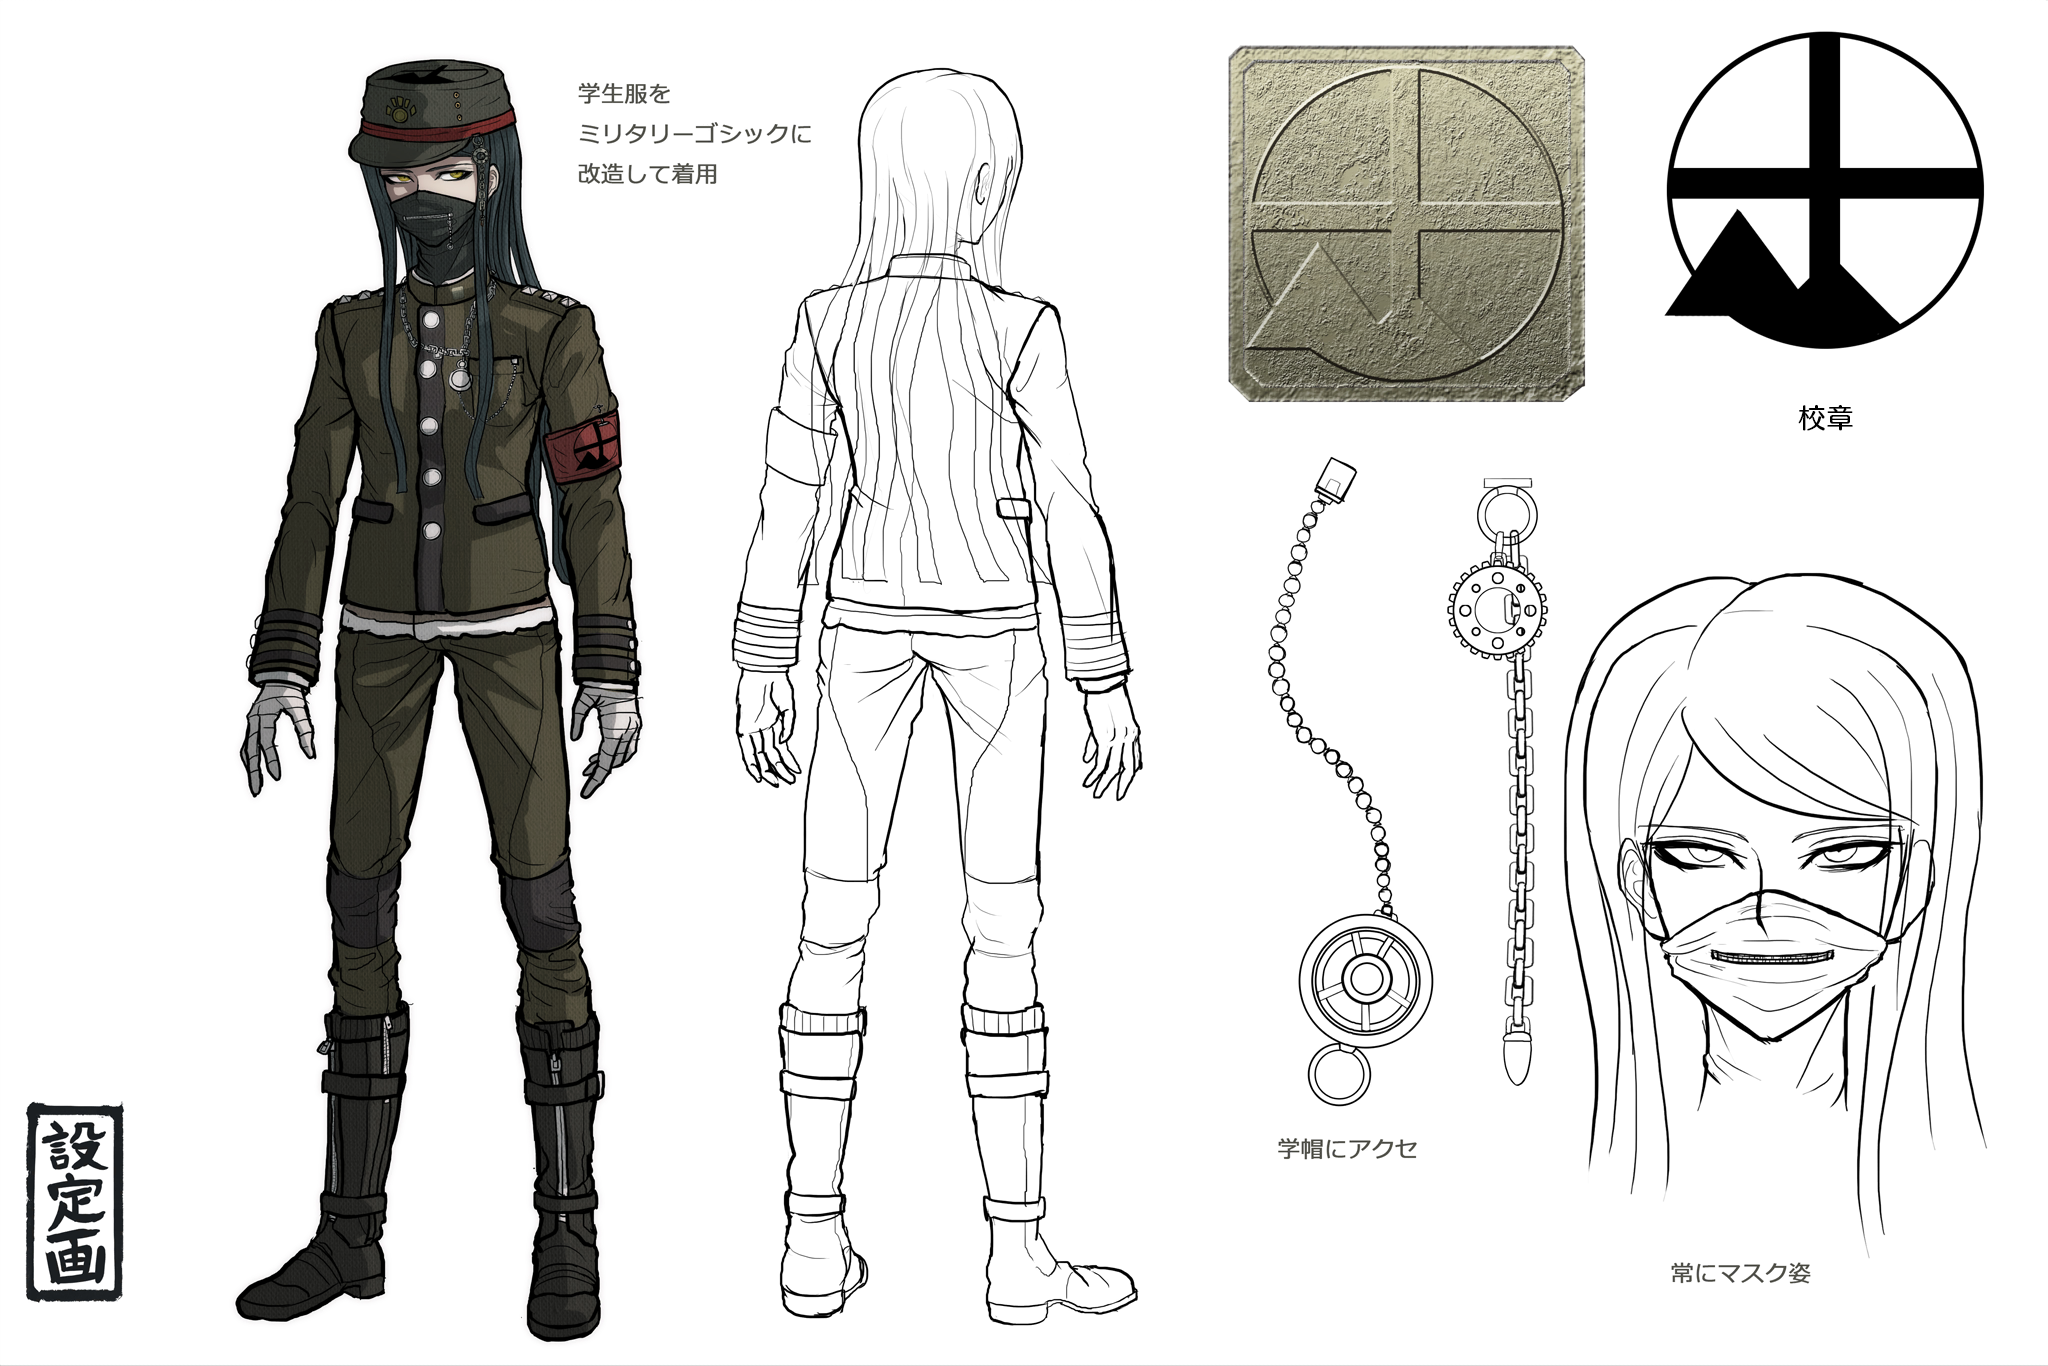 Korekiyo Is A Tall Slim Student With Rather Pale Skin And Long Black Hair His Stated To Follow An Archaic Image Of Beauty It Puts Female